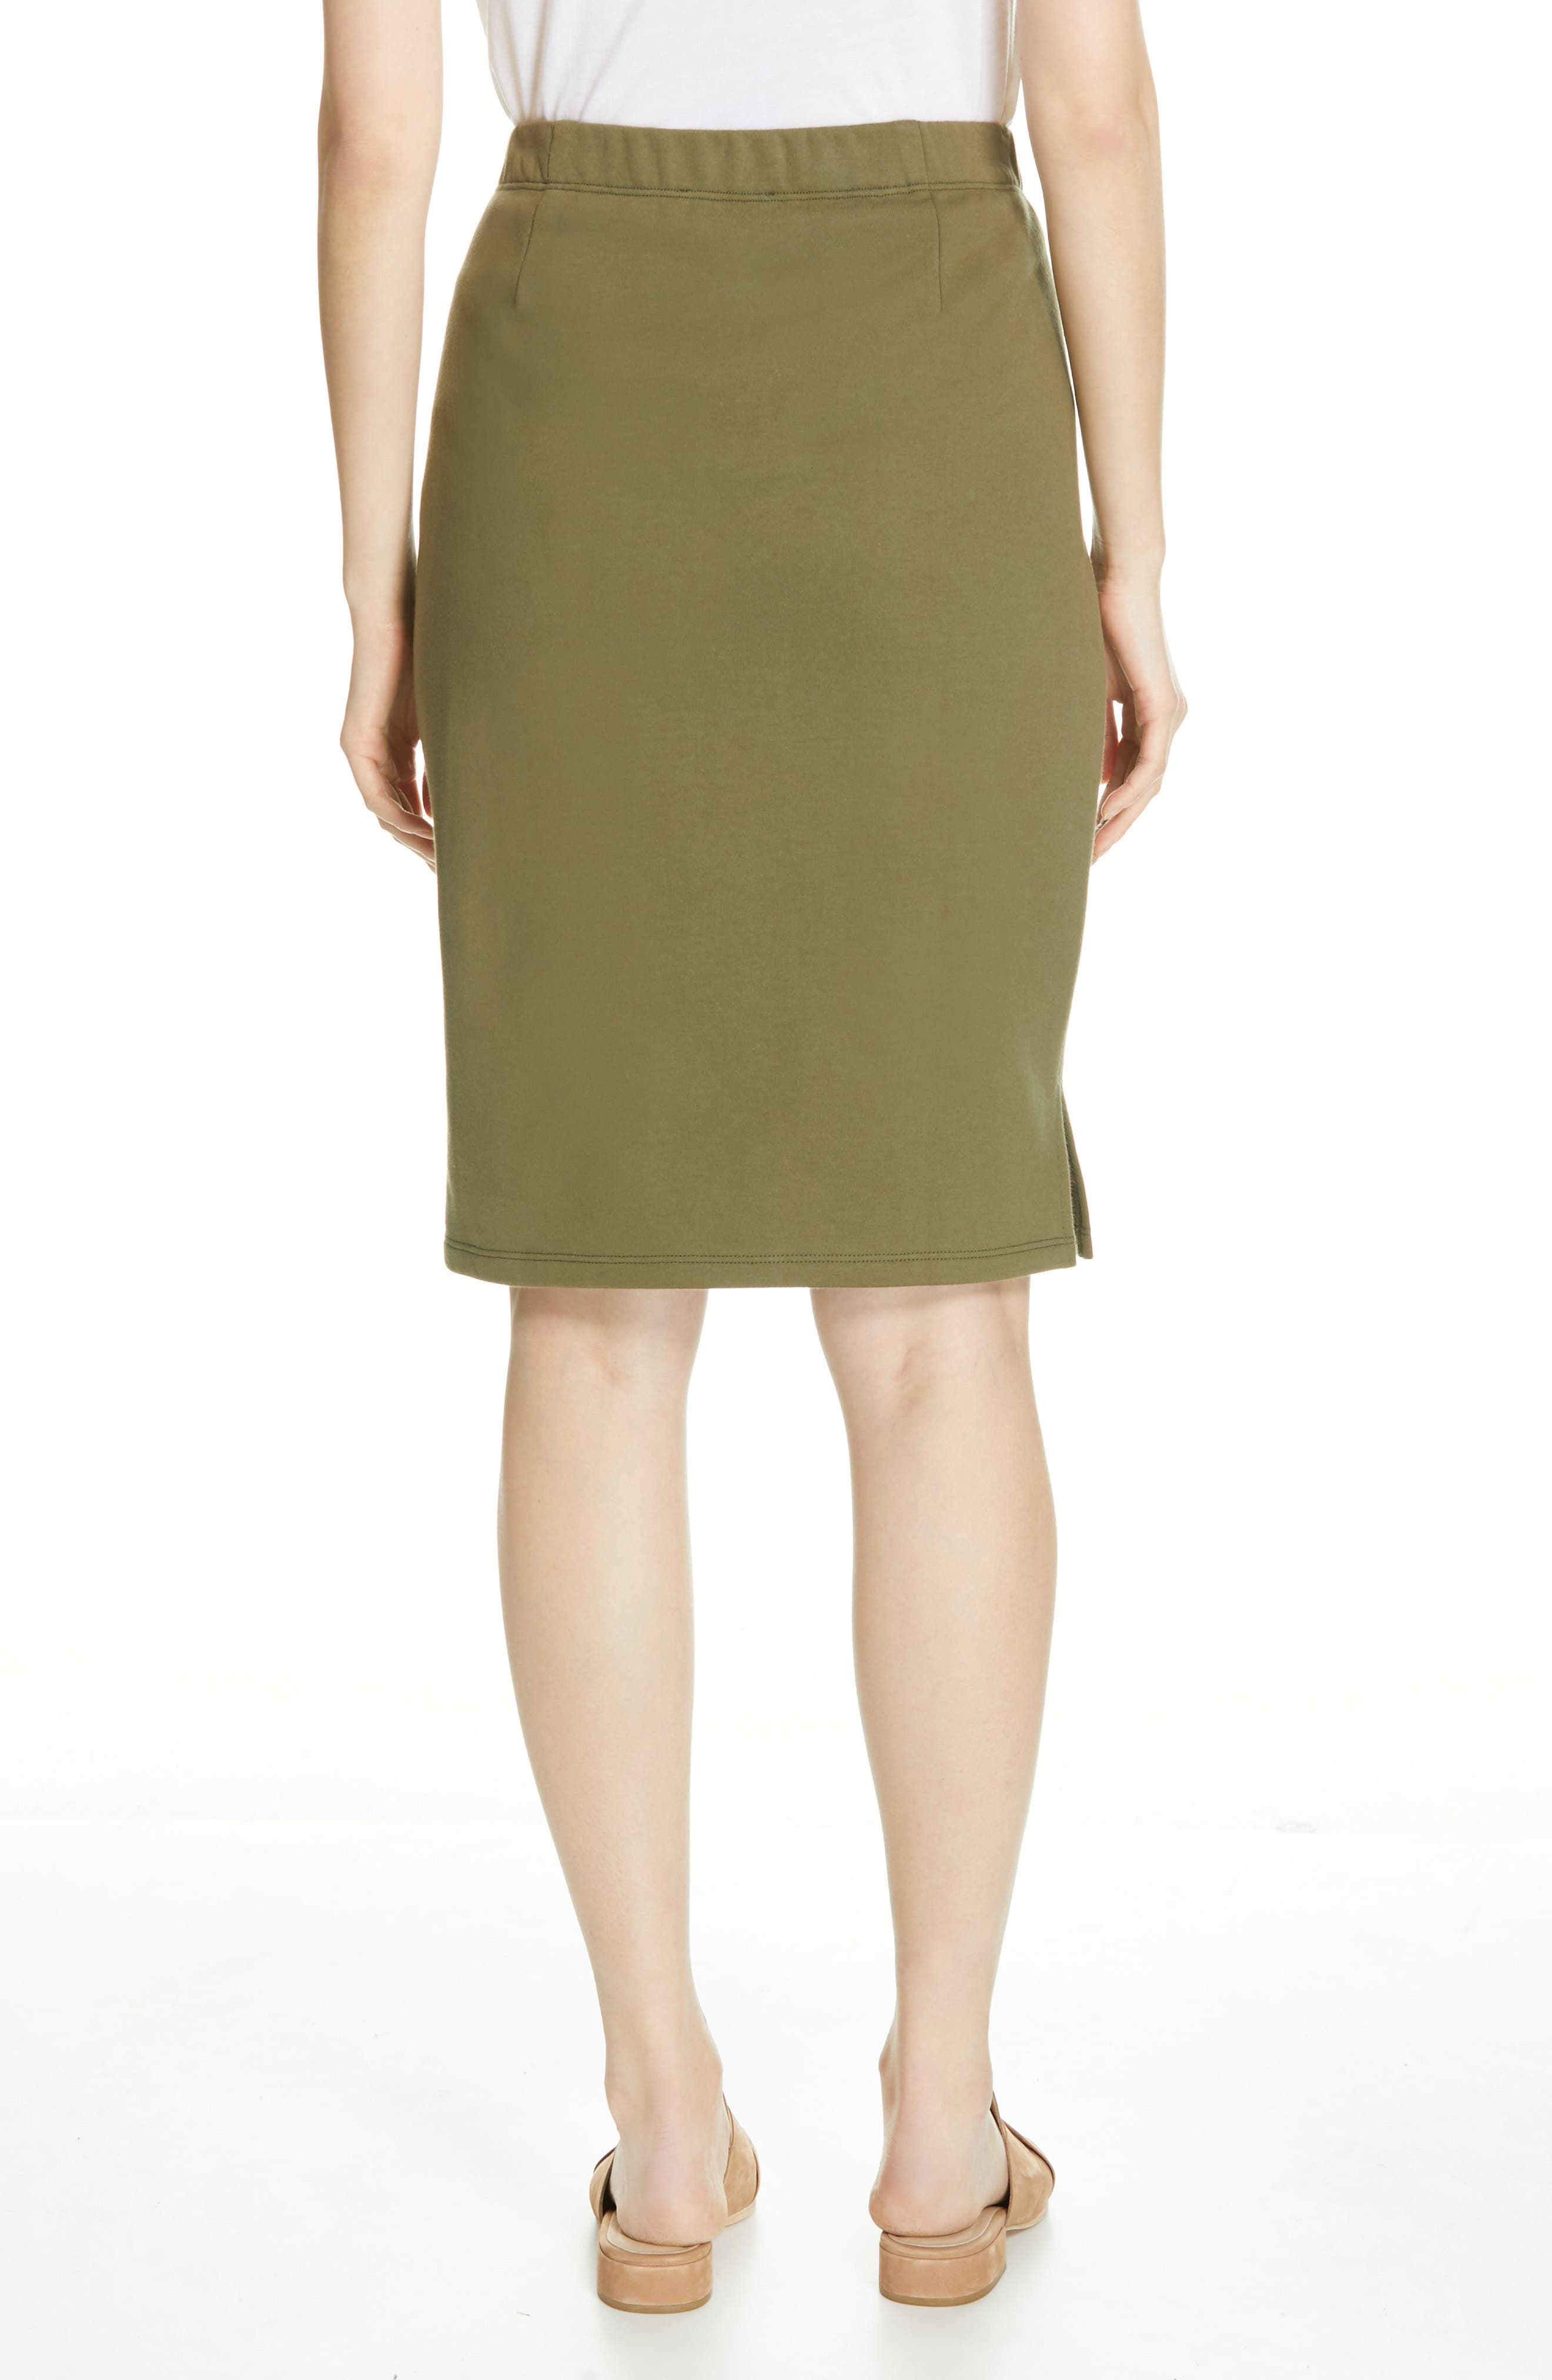 EILEEN FISHER, Organic Cotton Pencil Skirt, Alternate thumbnail 2, color, OLIVE